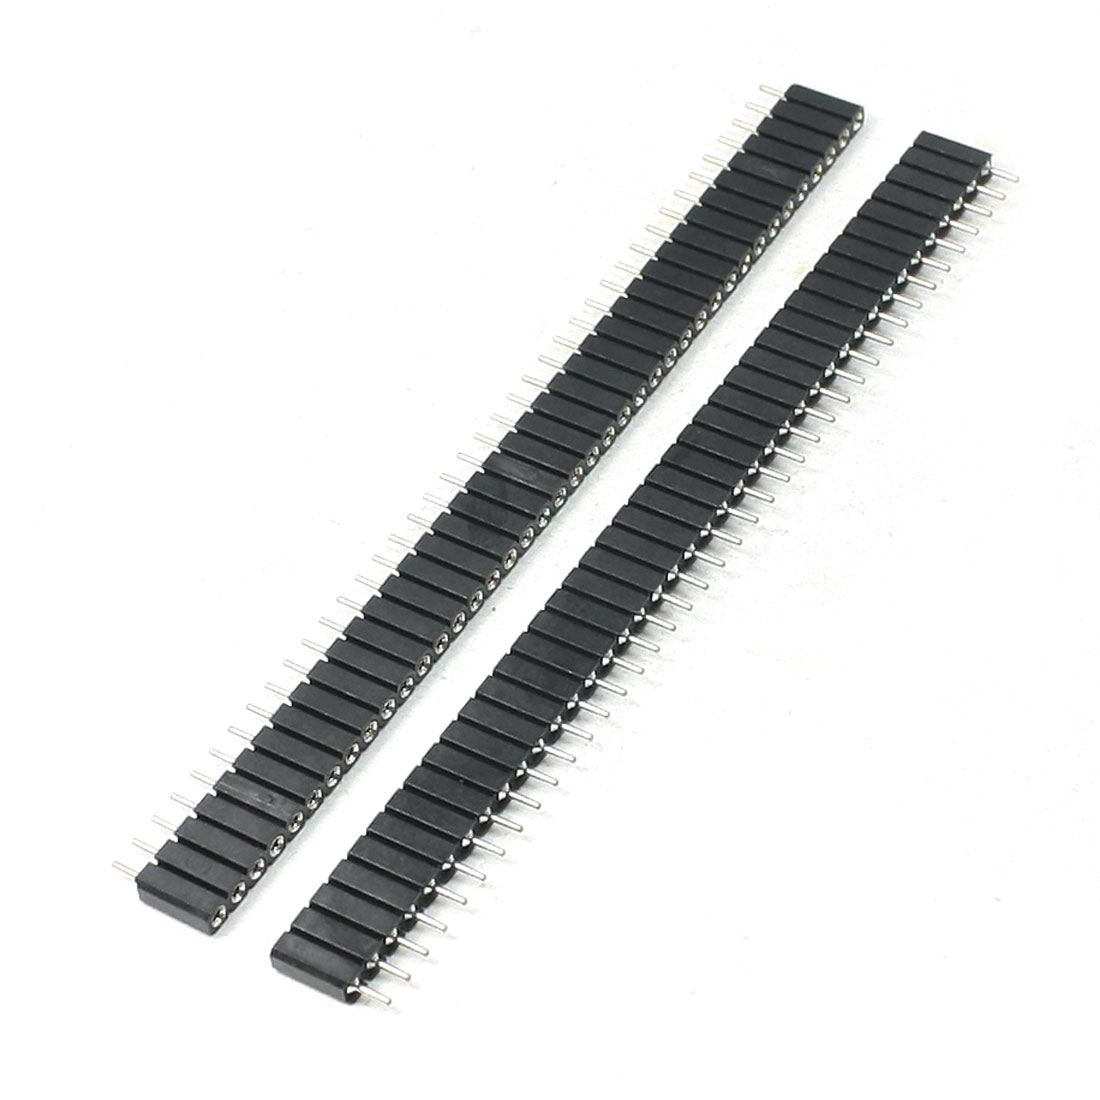 2.54mm Pitch Straight 40 Pins IC Socket Connector 2 Pieces